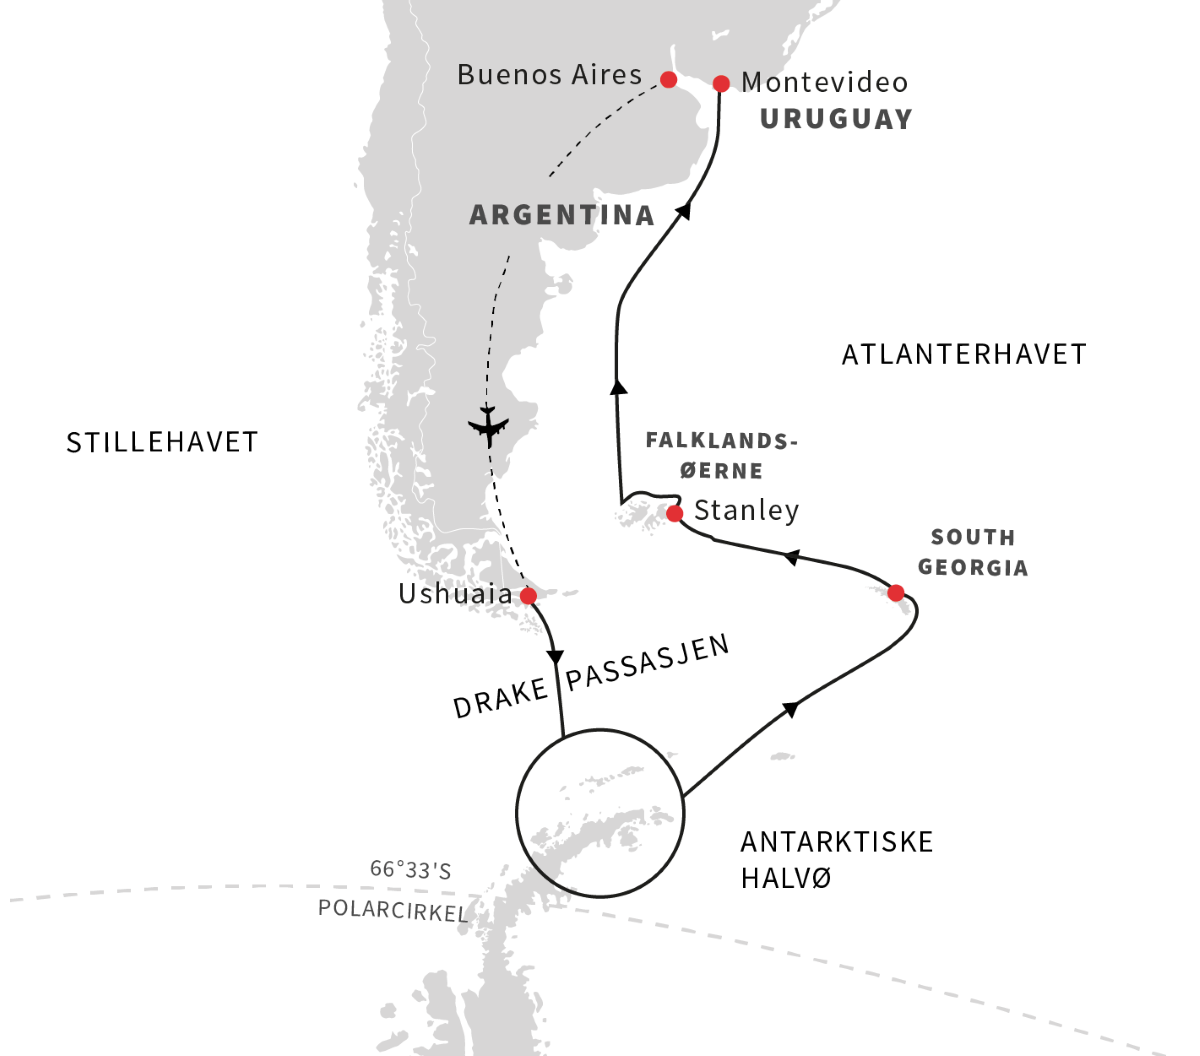 Antarktis, South Georgia, Falklandsøerne